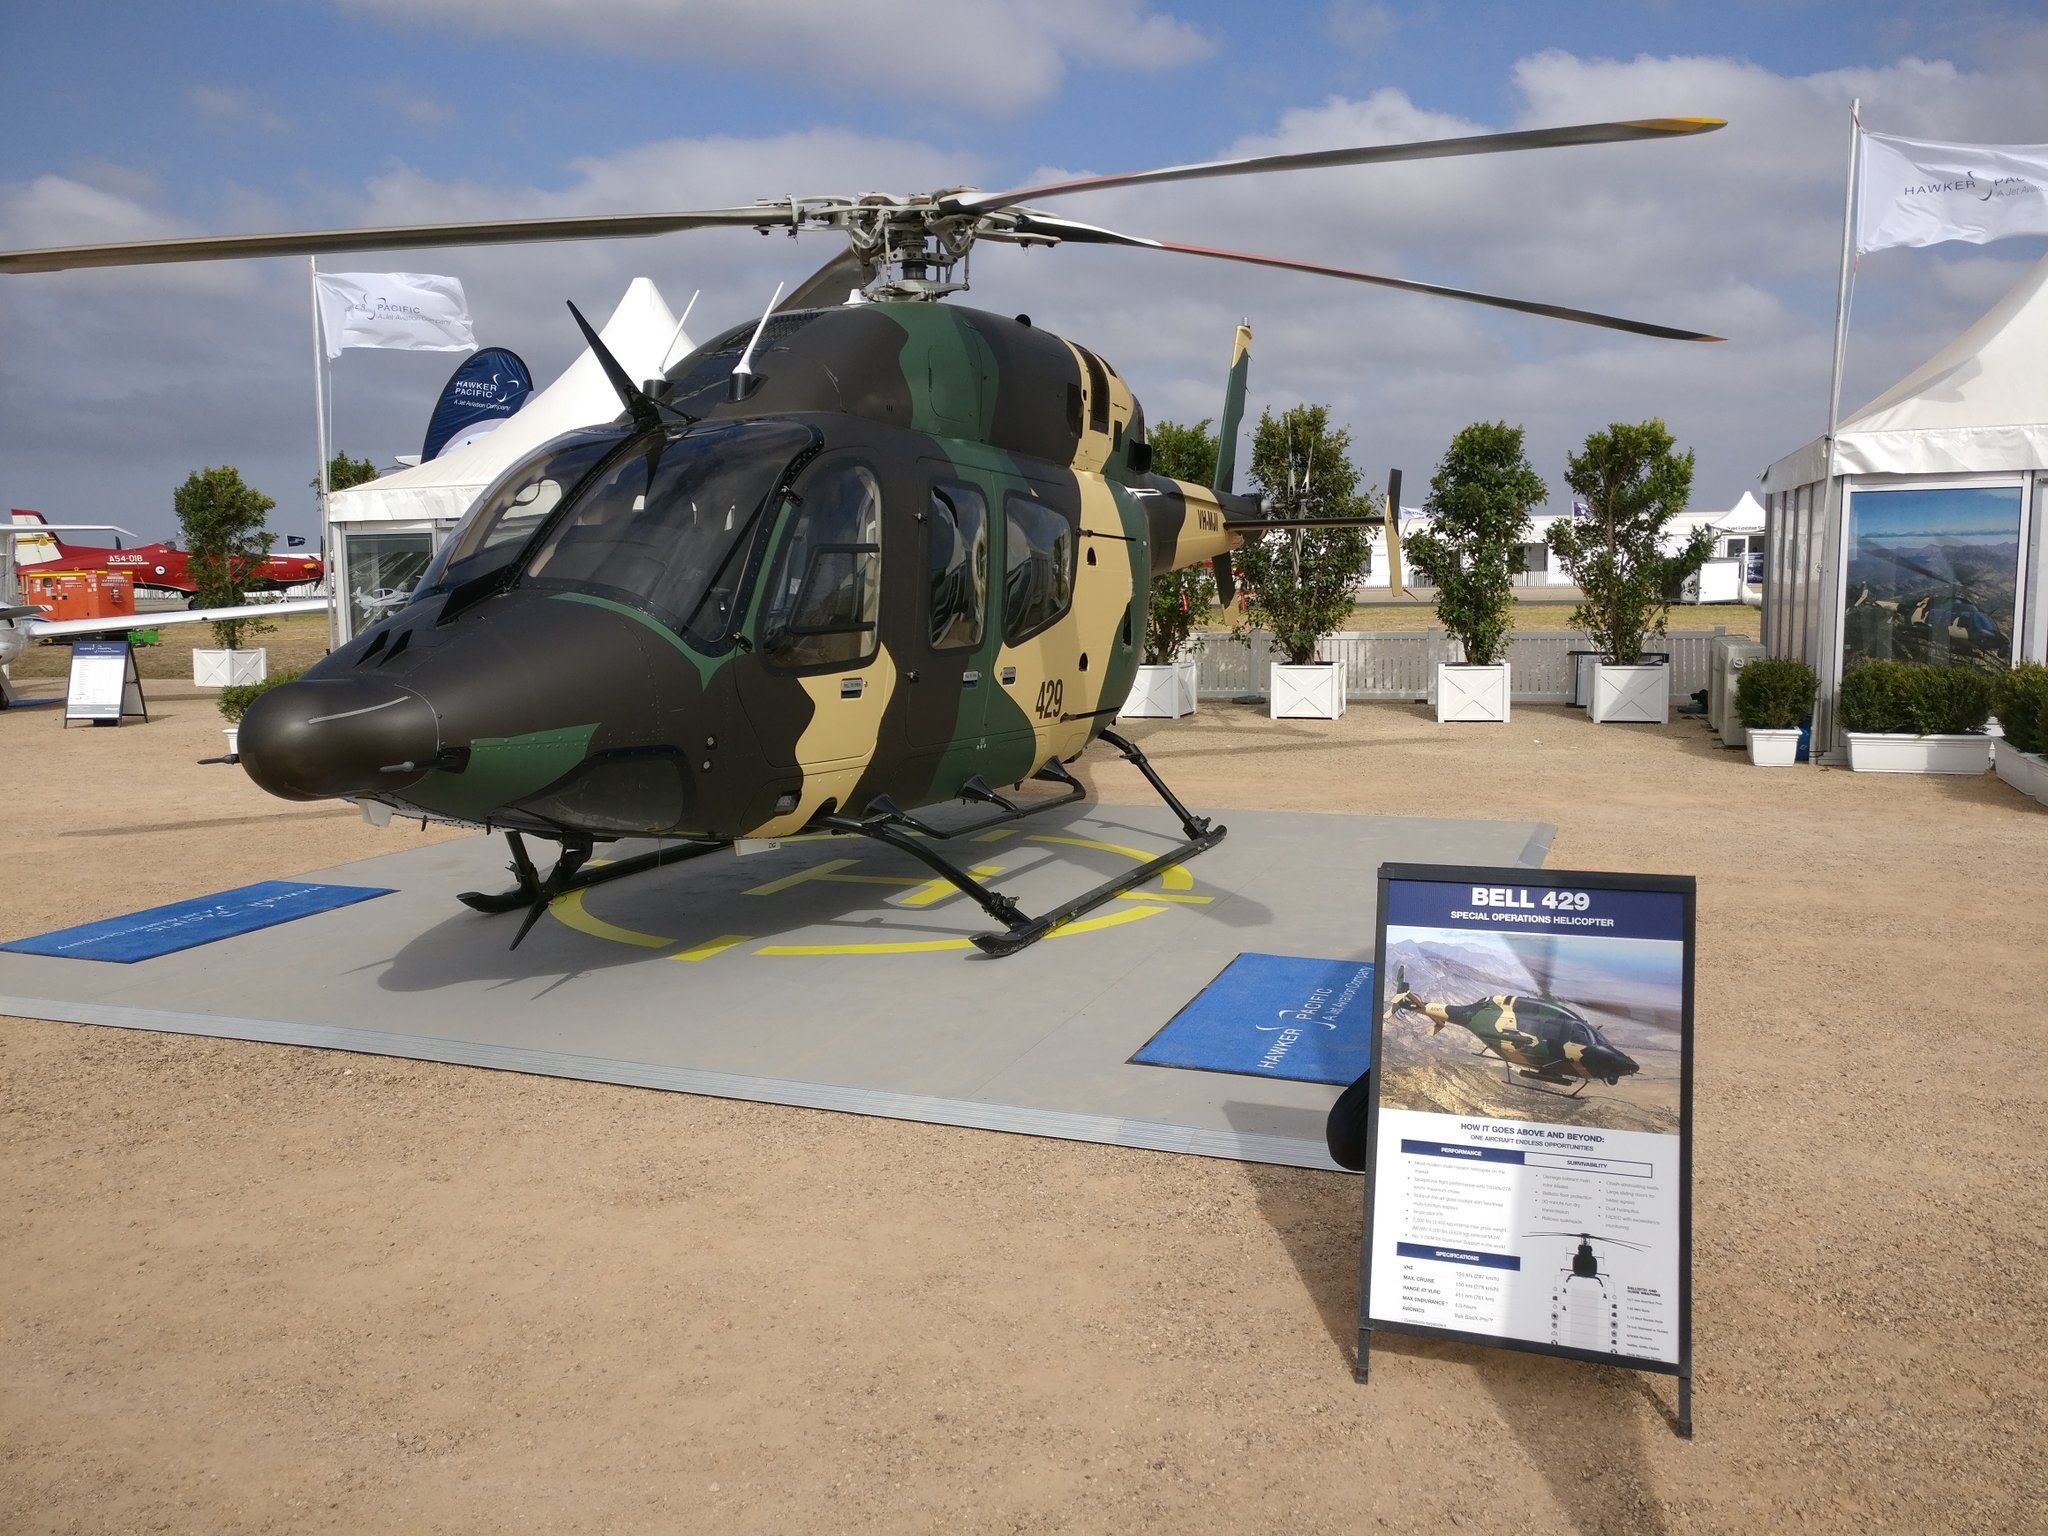 bell 429 hawker pacific special forces helicopter